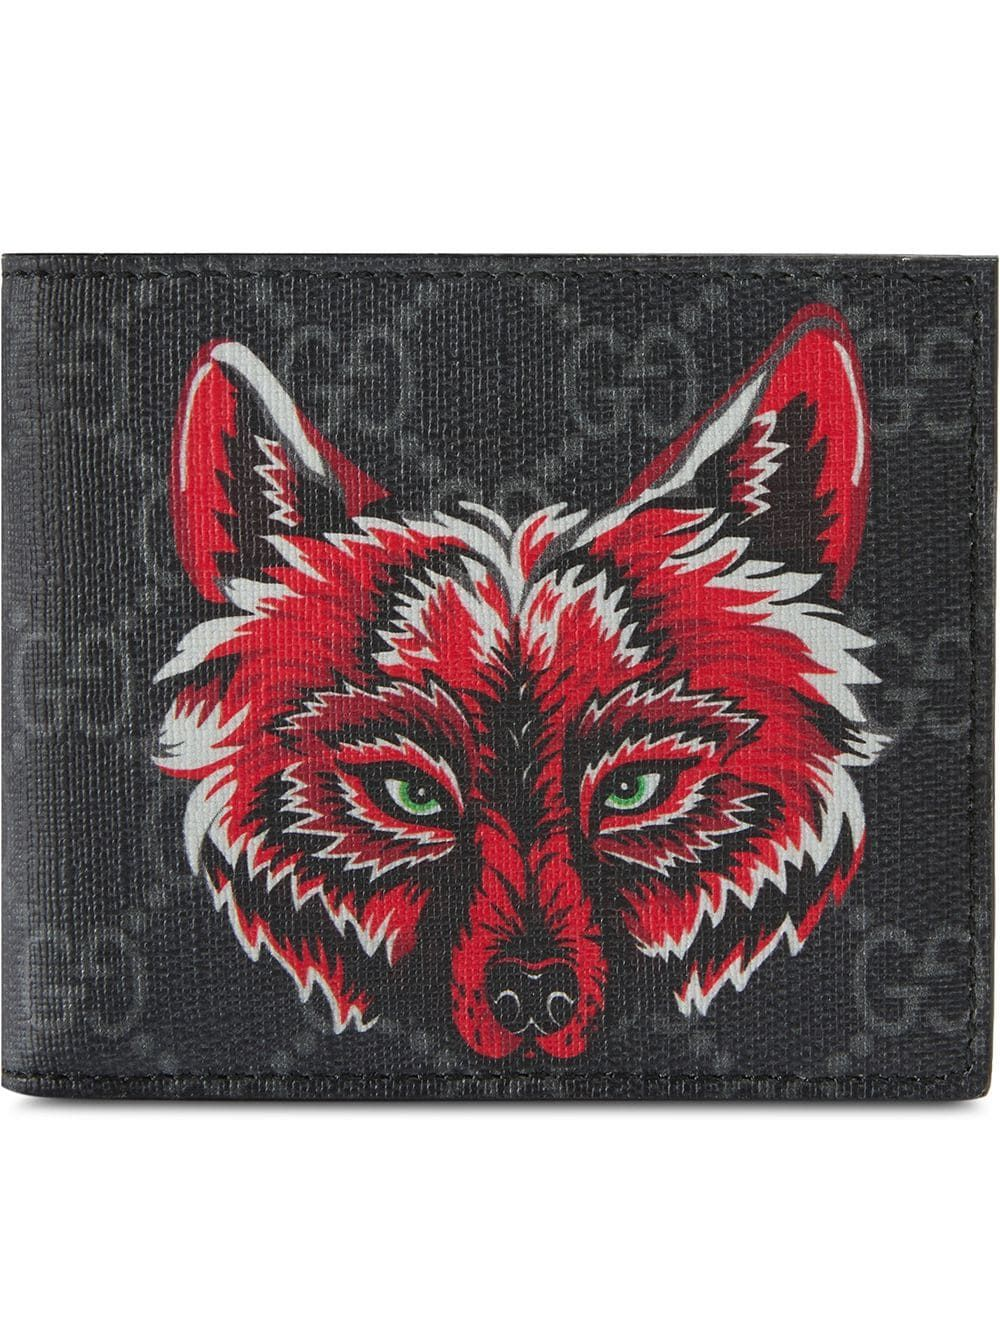 b78abeee408 GUCCI GUCCI GG SUPREME WALLET WITH WOLF - BLACK.  gucci